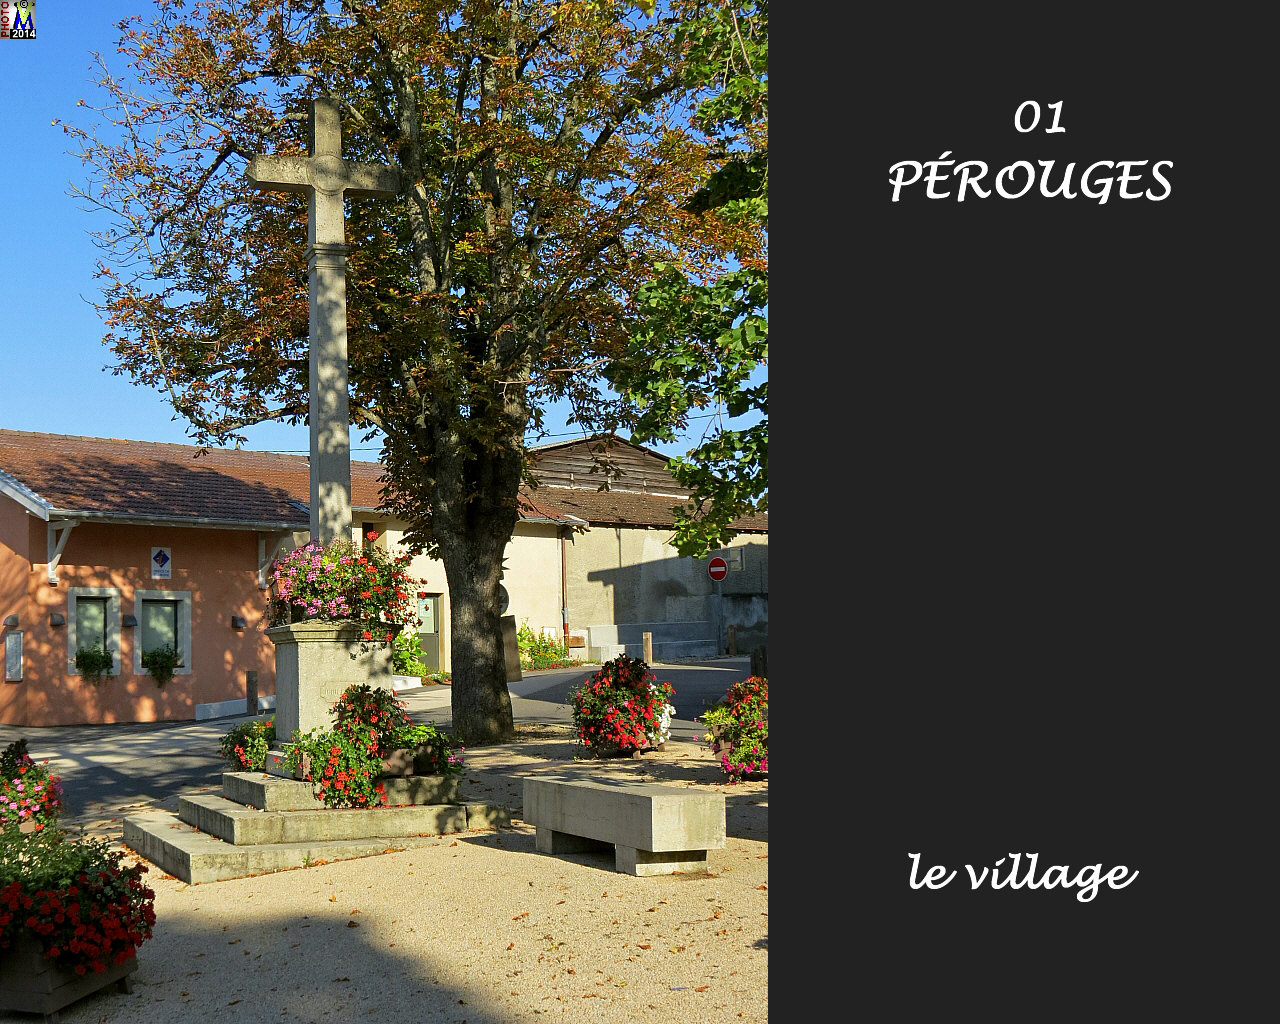 01PEROUGES_village_108.jpg